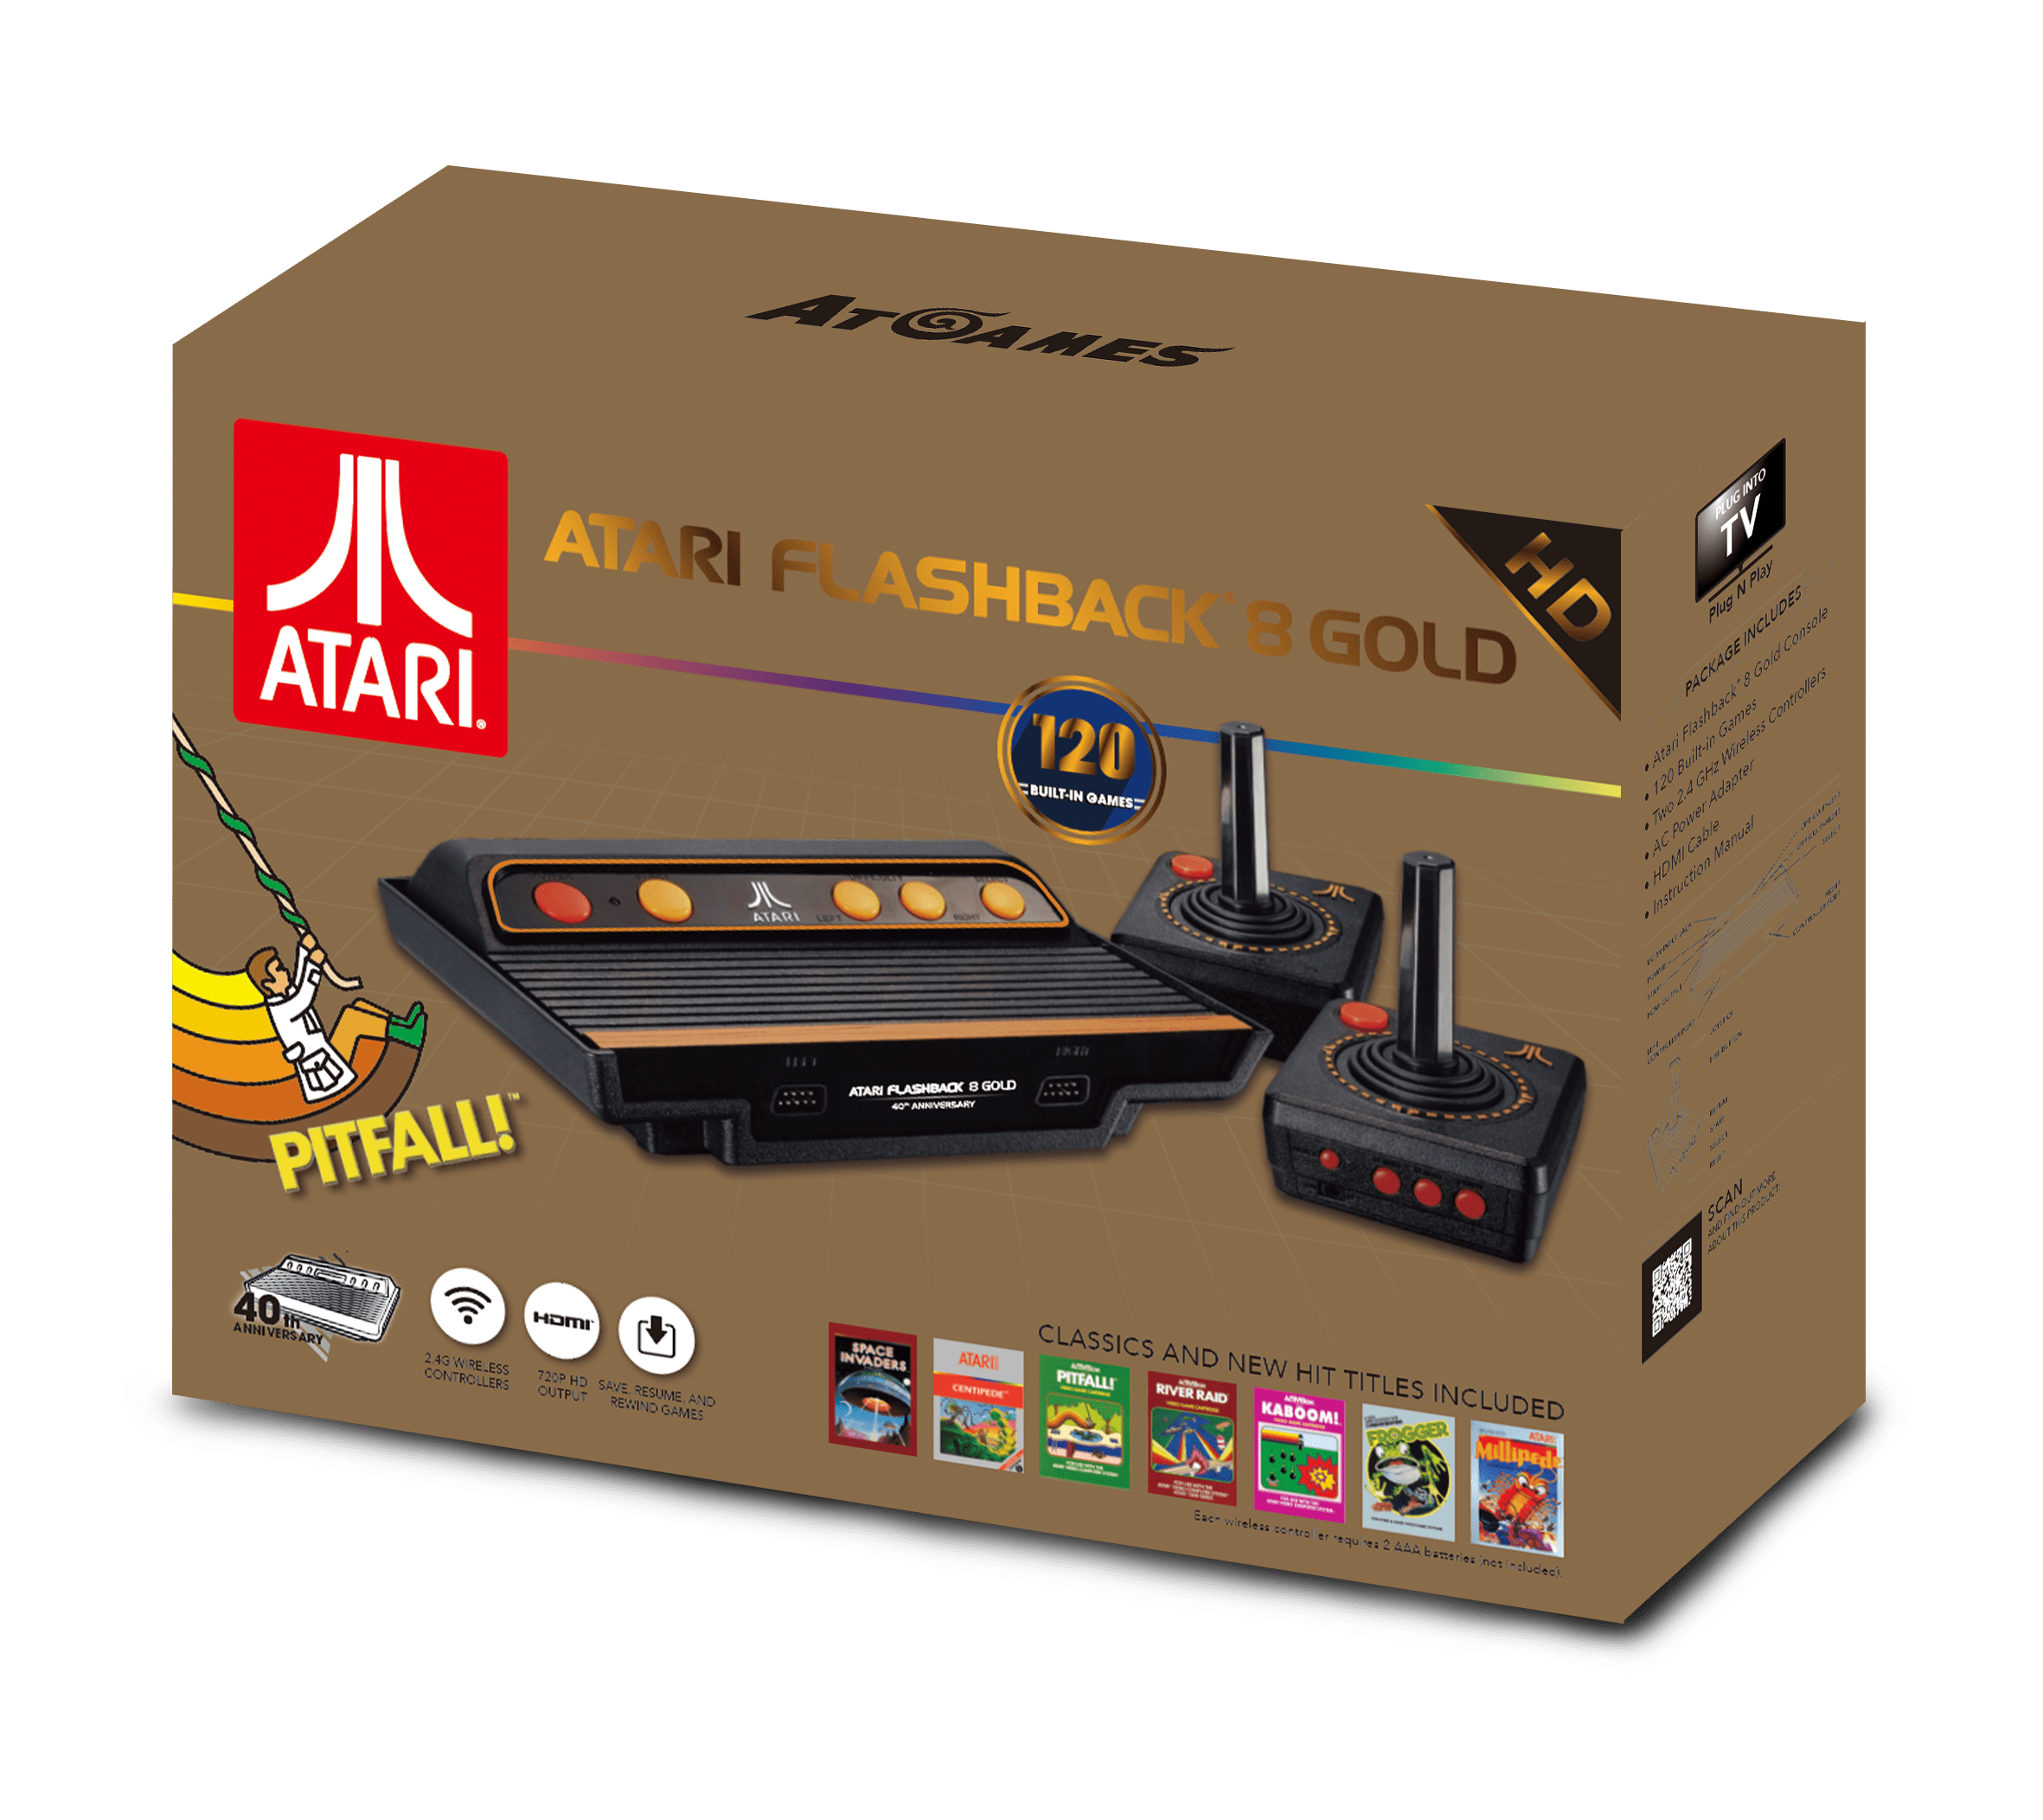 Atari Flashback 8 Gold (2017): The Official Game List